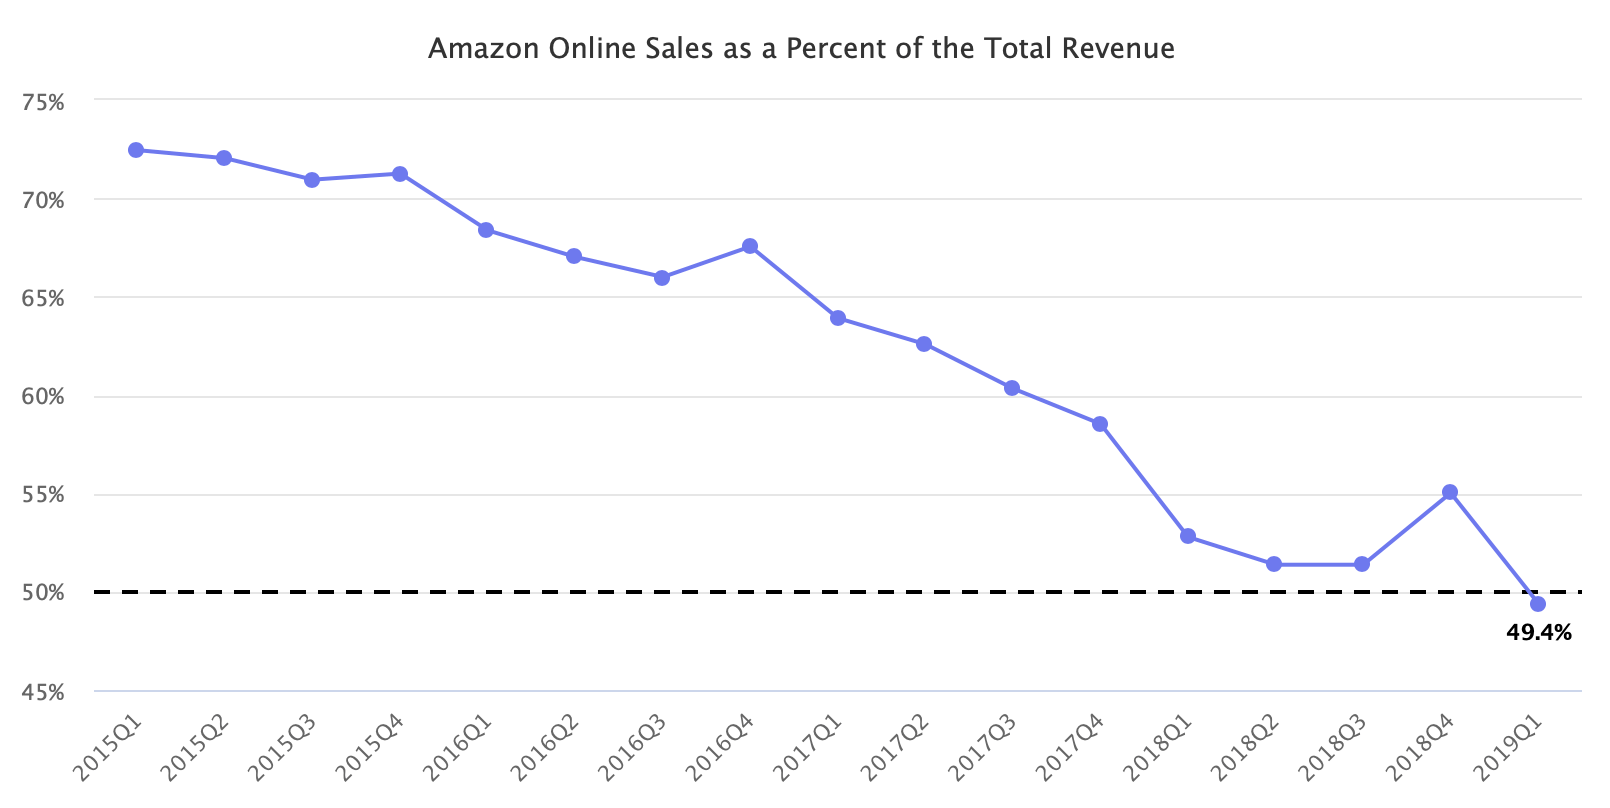 Amazon Online Sales as a Percent of the Total Revenue